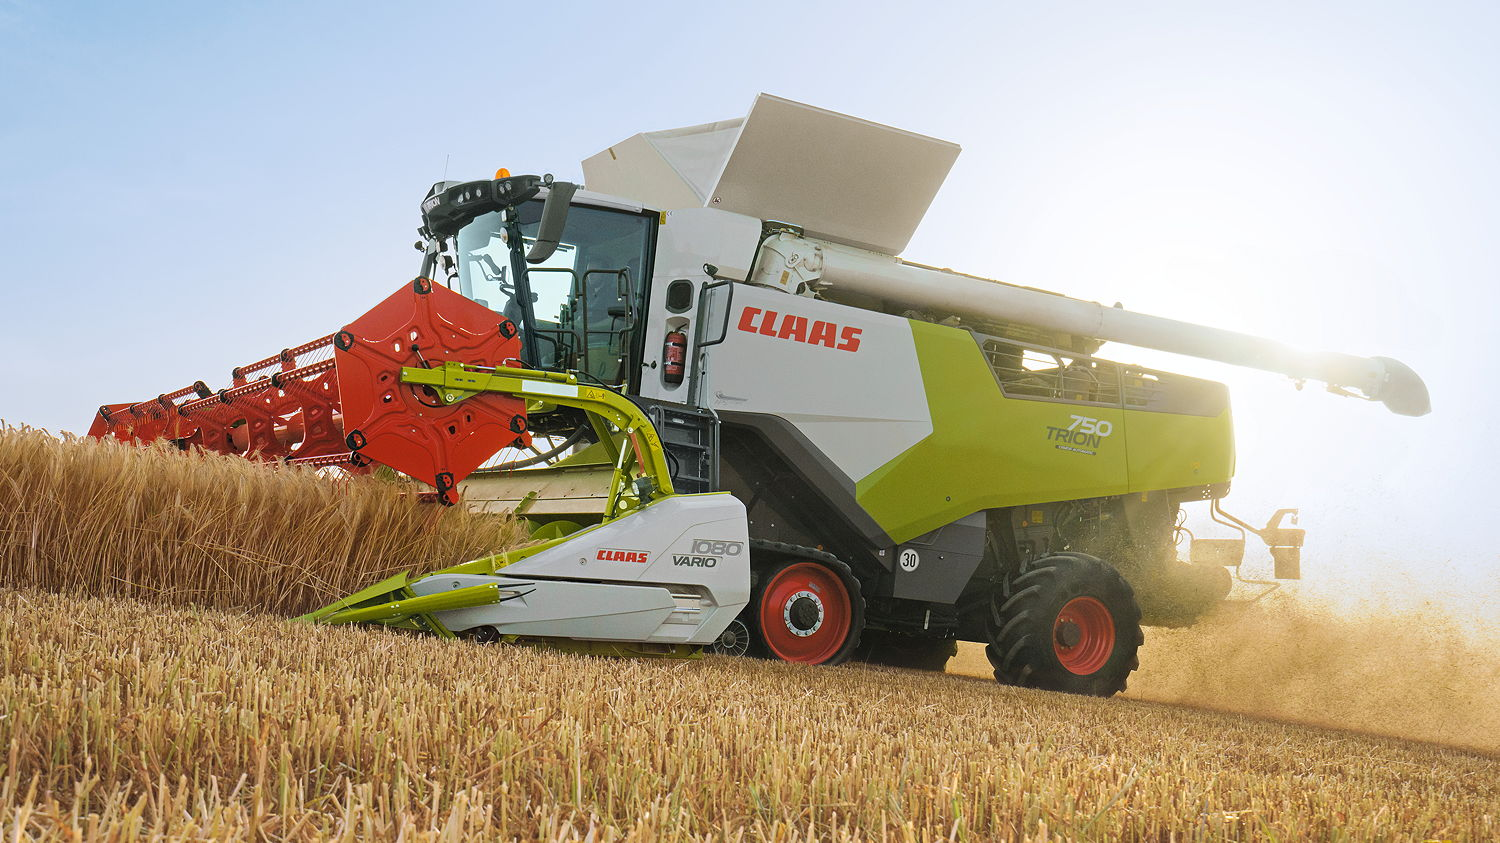 Claas' new flagship Trion 750 Terra Trac combine